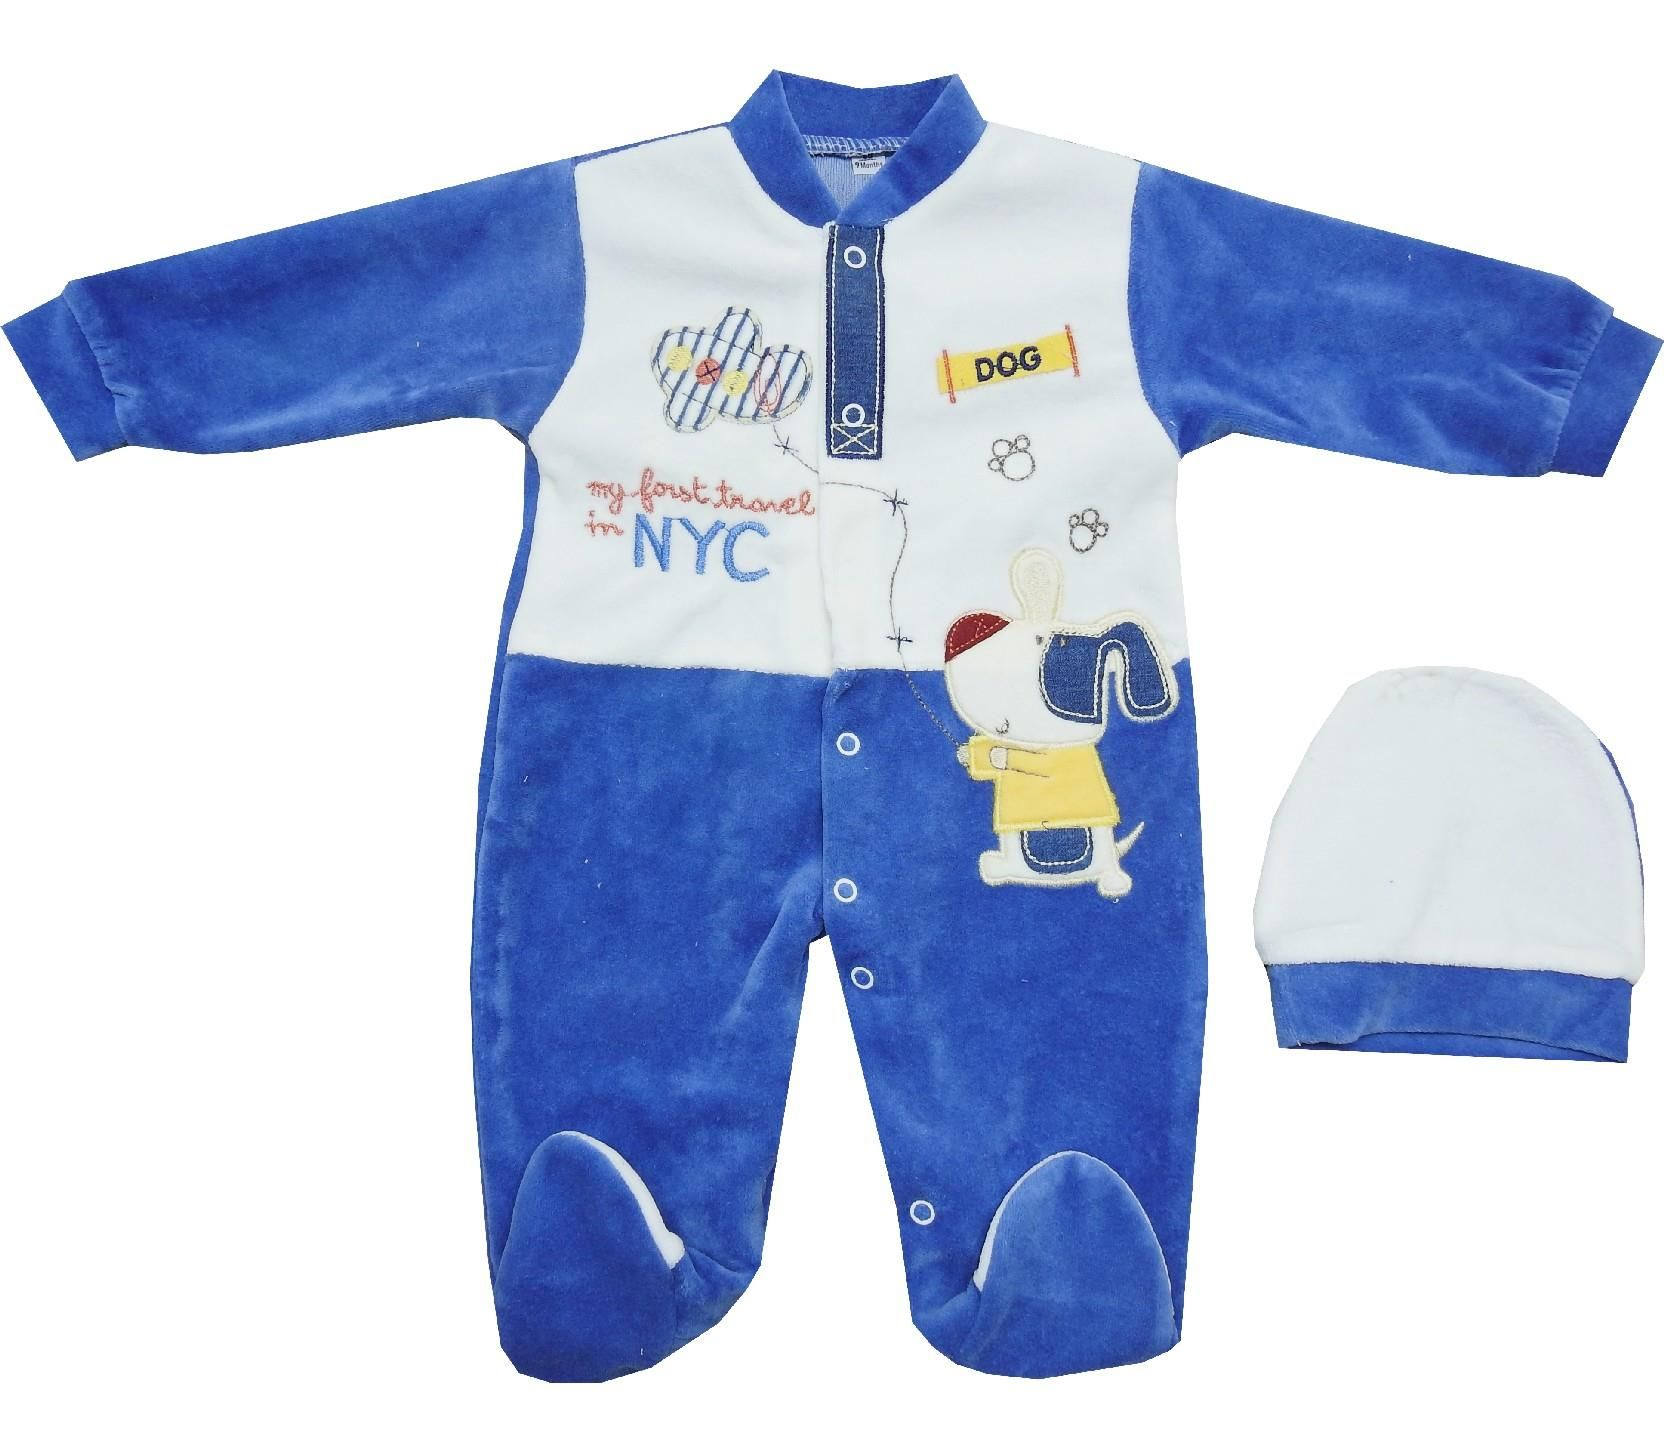 696 Wholesale NYC printed velvet romper for baby 0 3 6 month